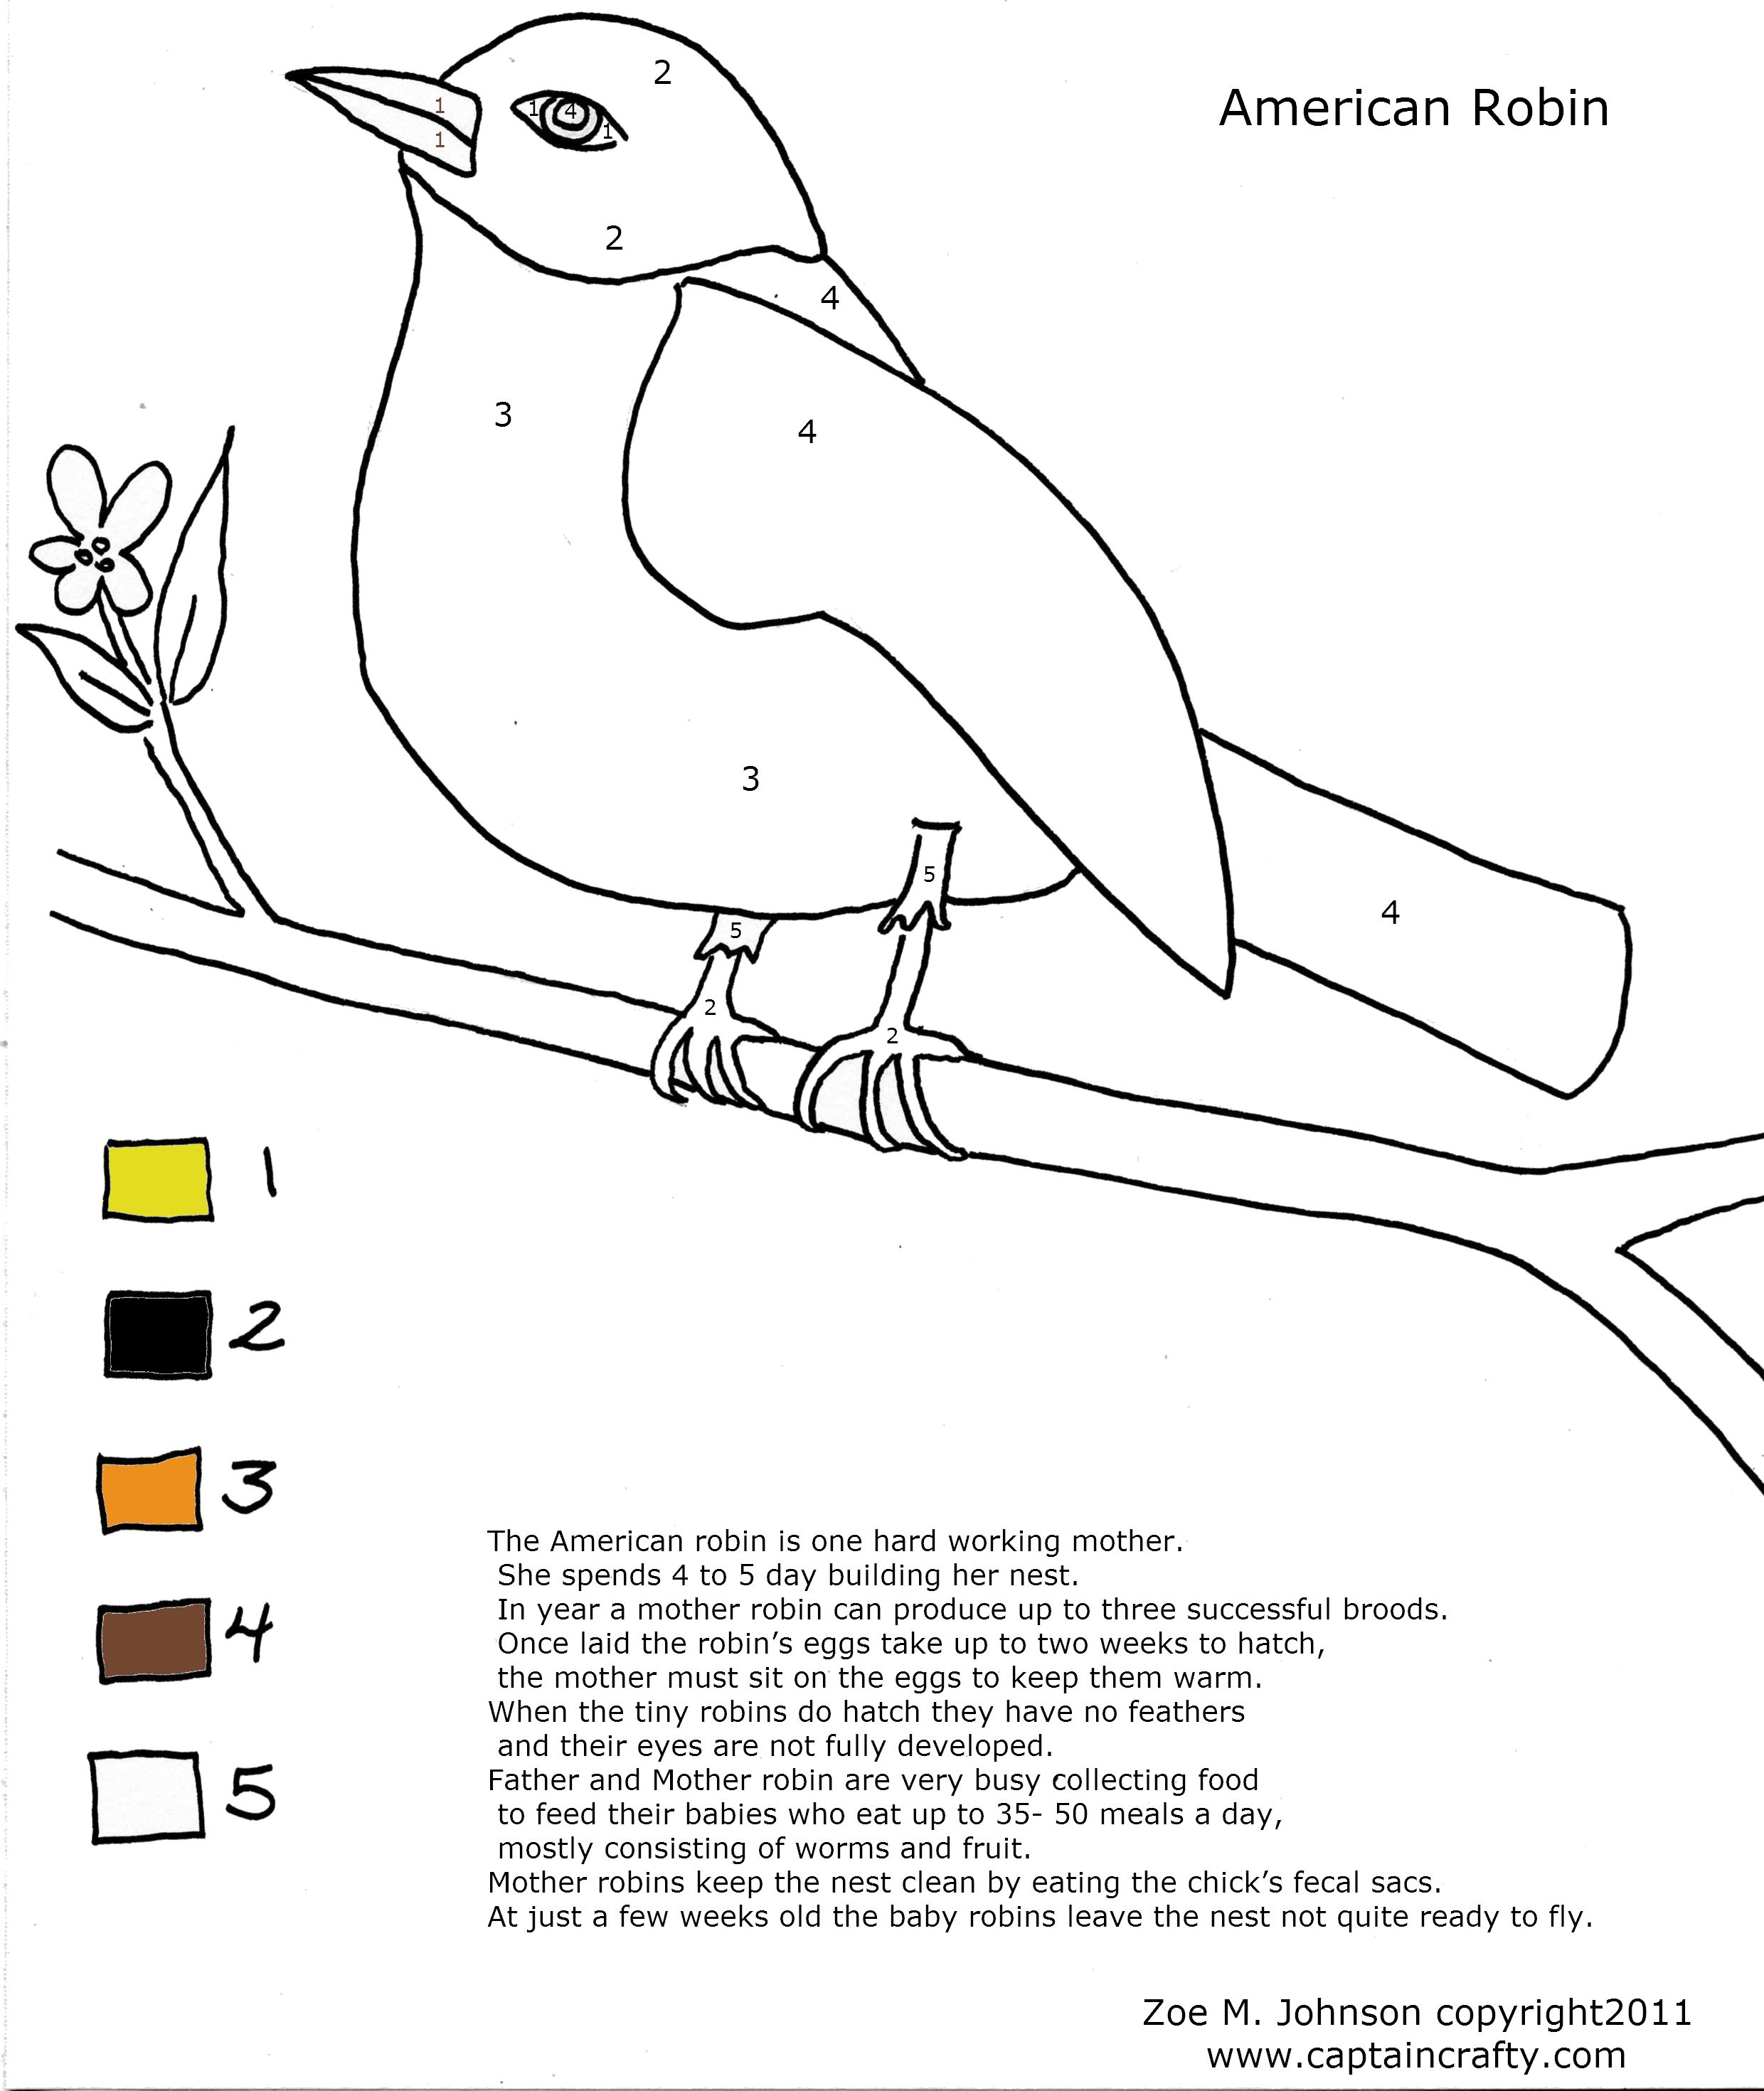 bird coloring pages for modg 4th science robin nature coloring sheetjpg 24802940